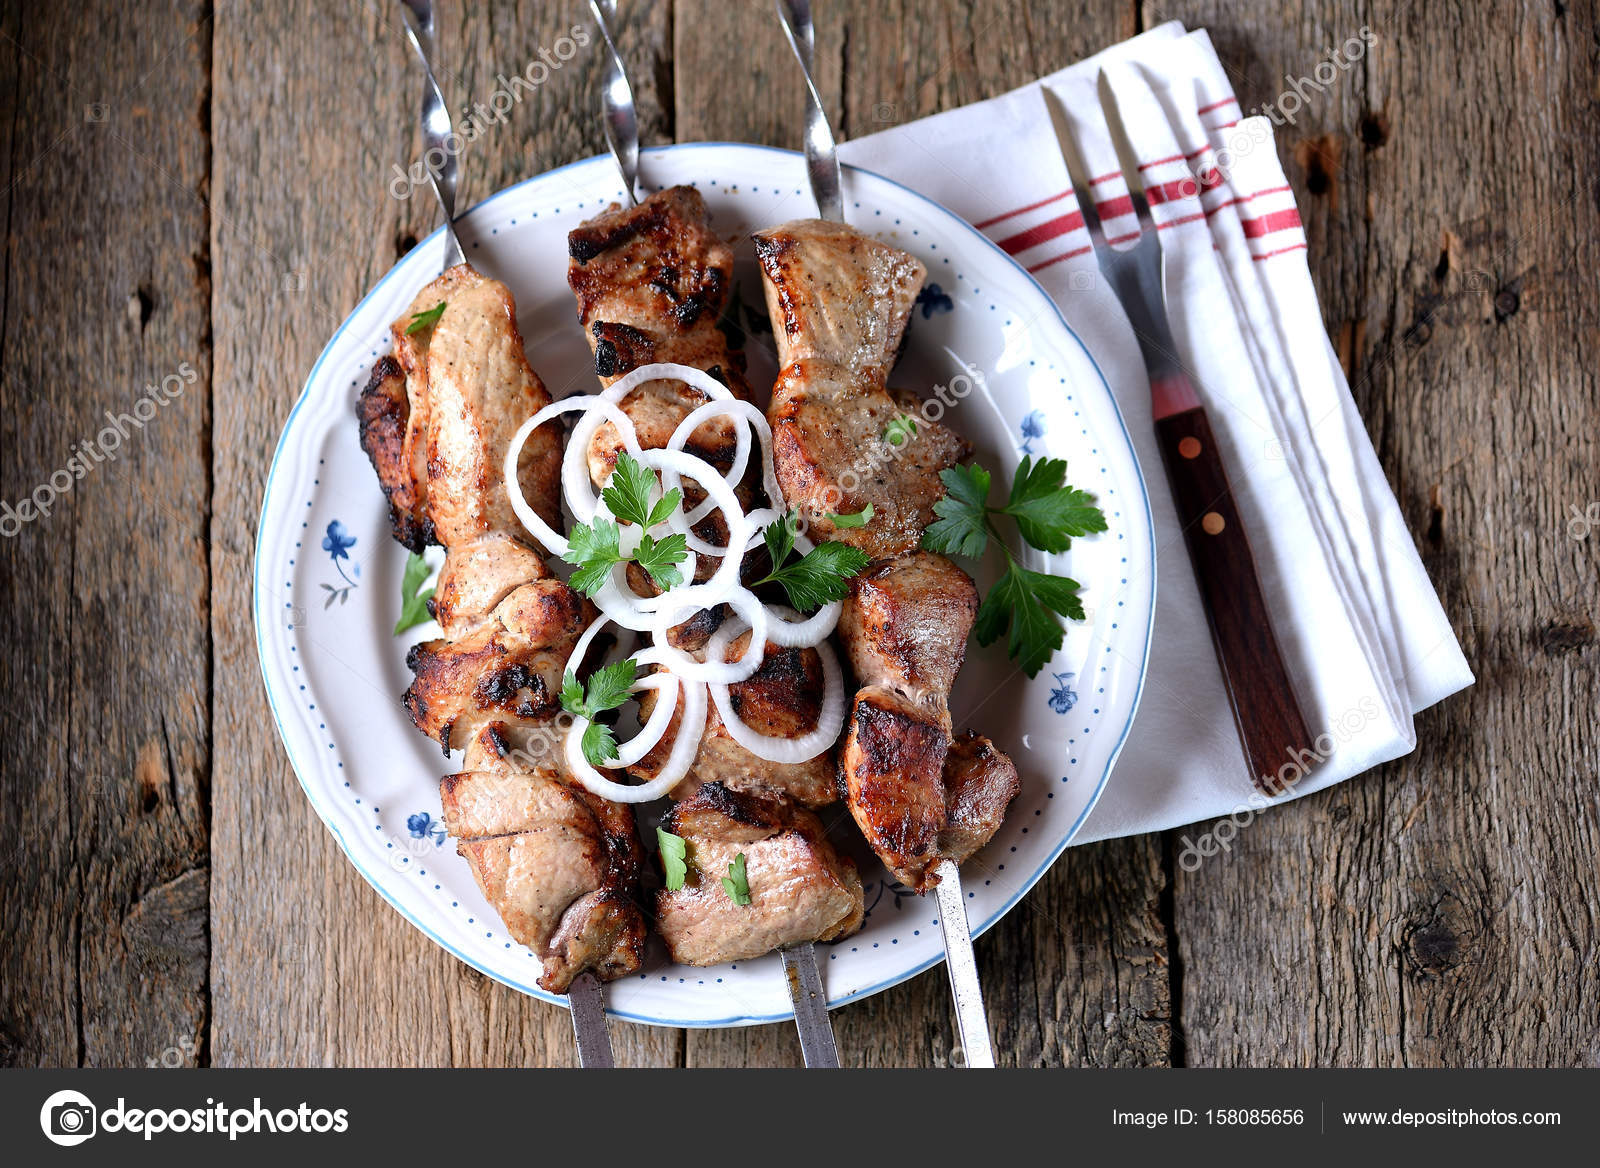 How to pickle meat for kebabs Meat for kebabs: marinade, recipe, photo 10